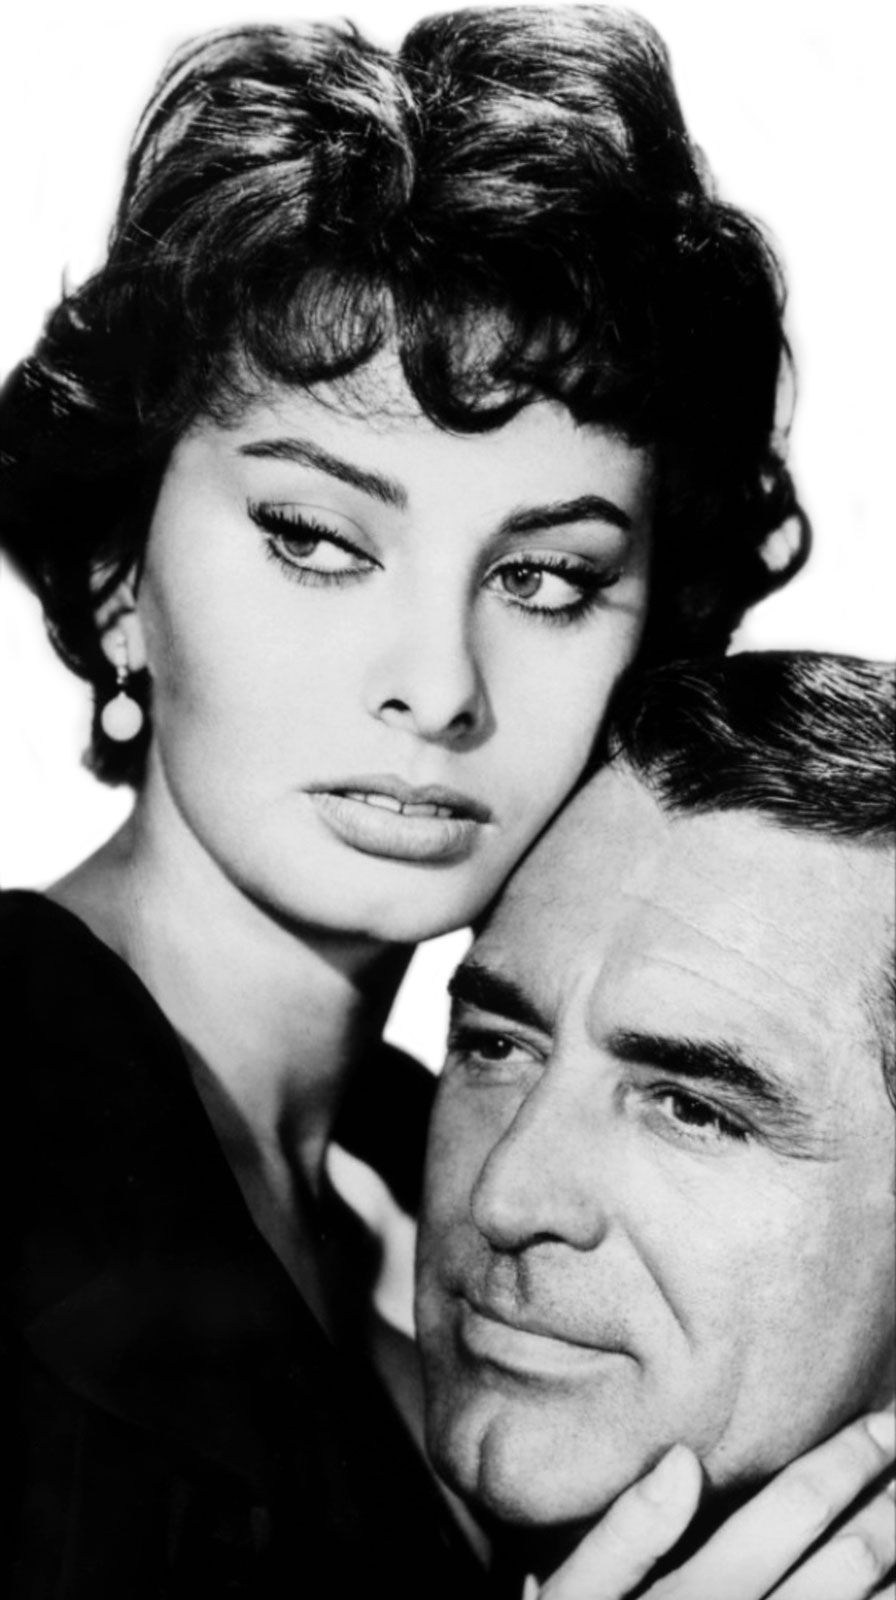 Sophia Loren And Cary Grant In Houseboat 1958 Sophia Loren Cary Grant Hollywood Icons